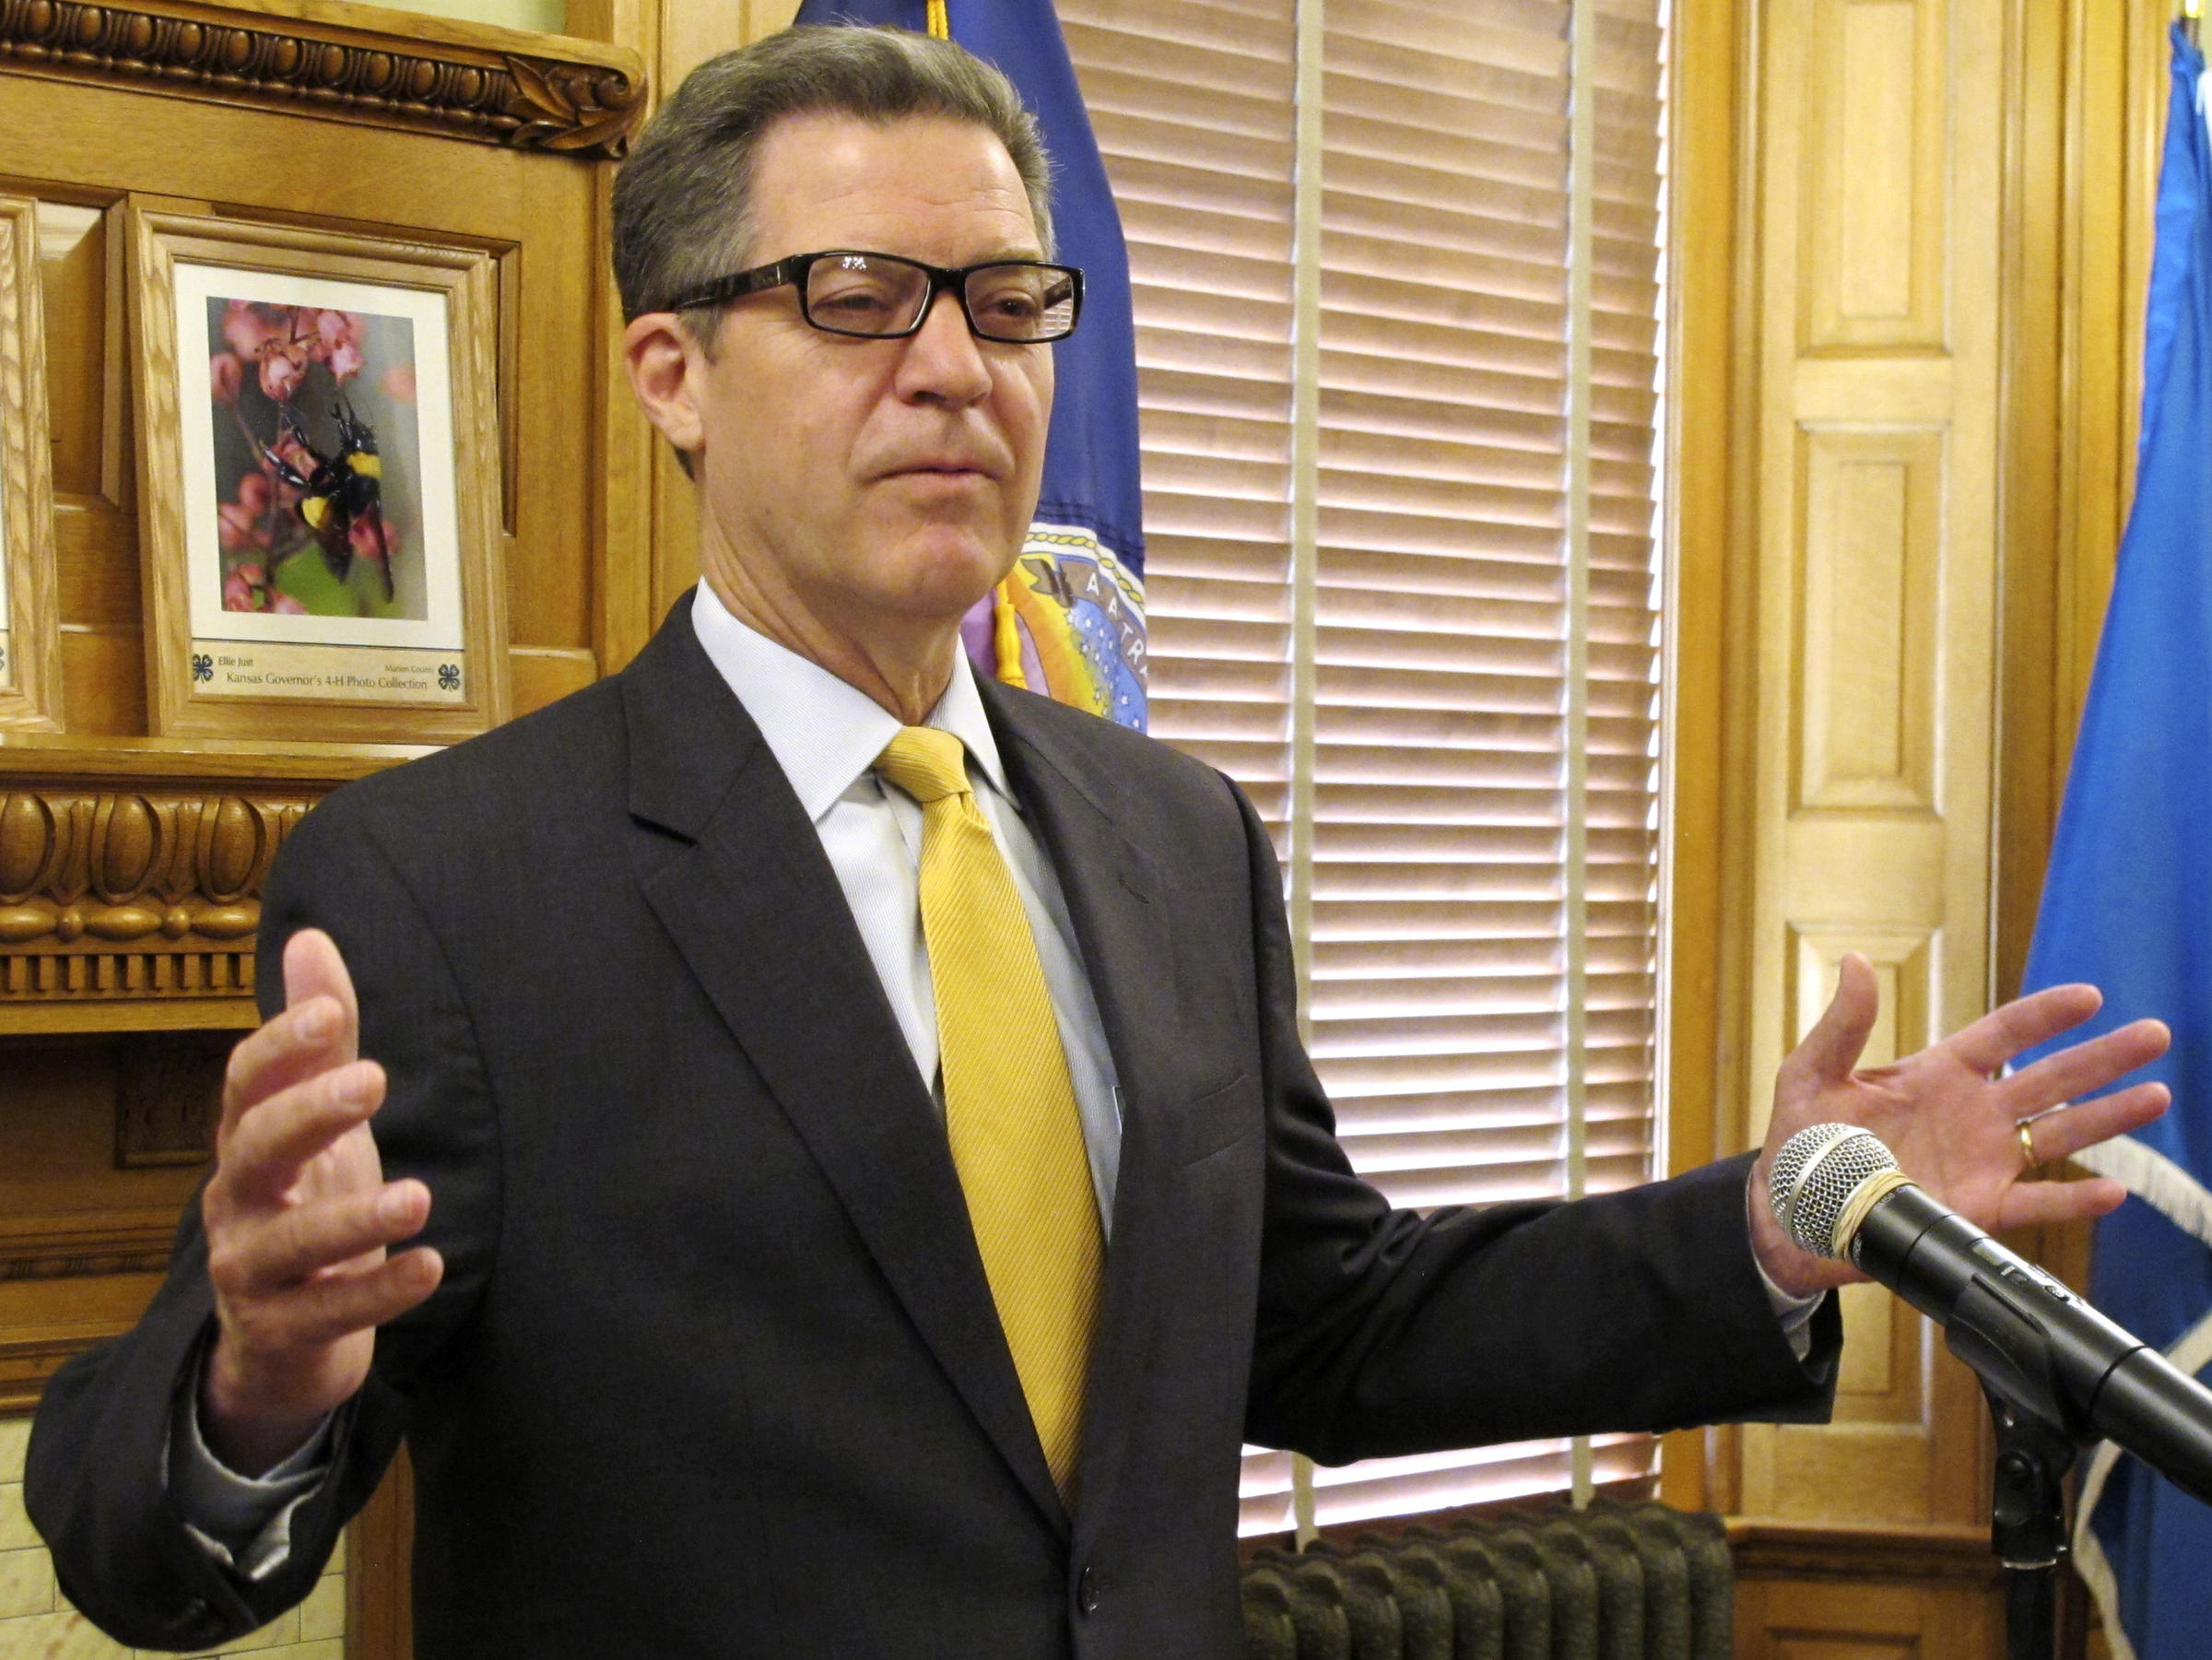 Trump Picks Sam Brownback as International Religious Freedom Ambassador